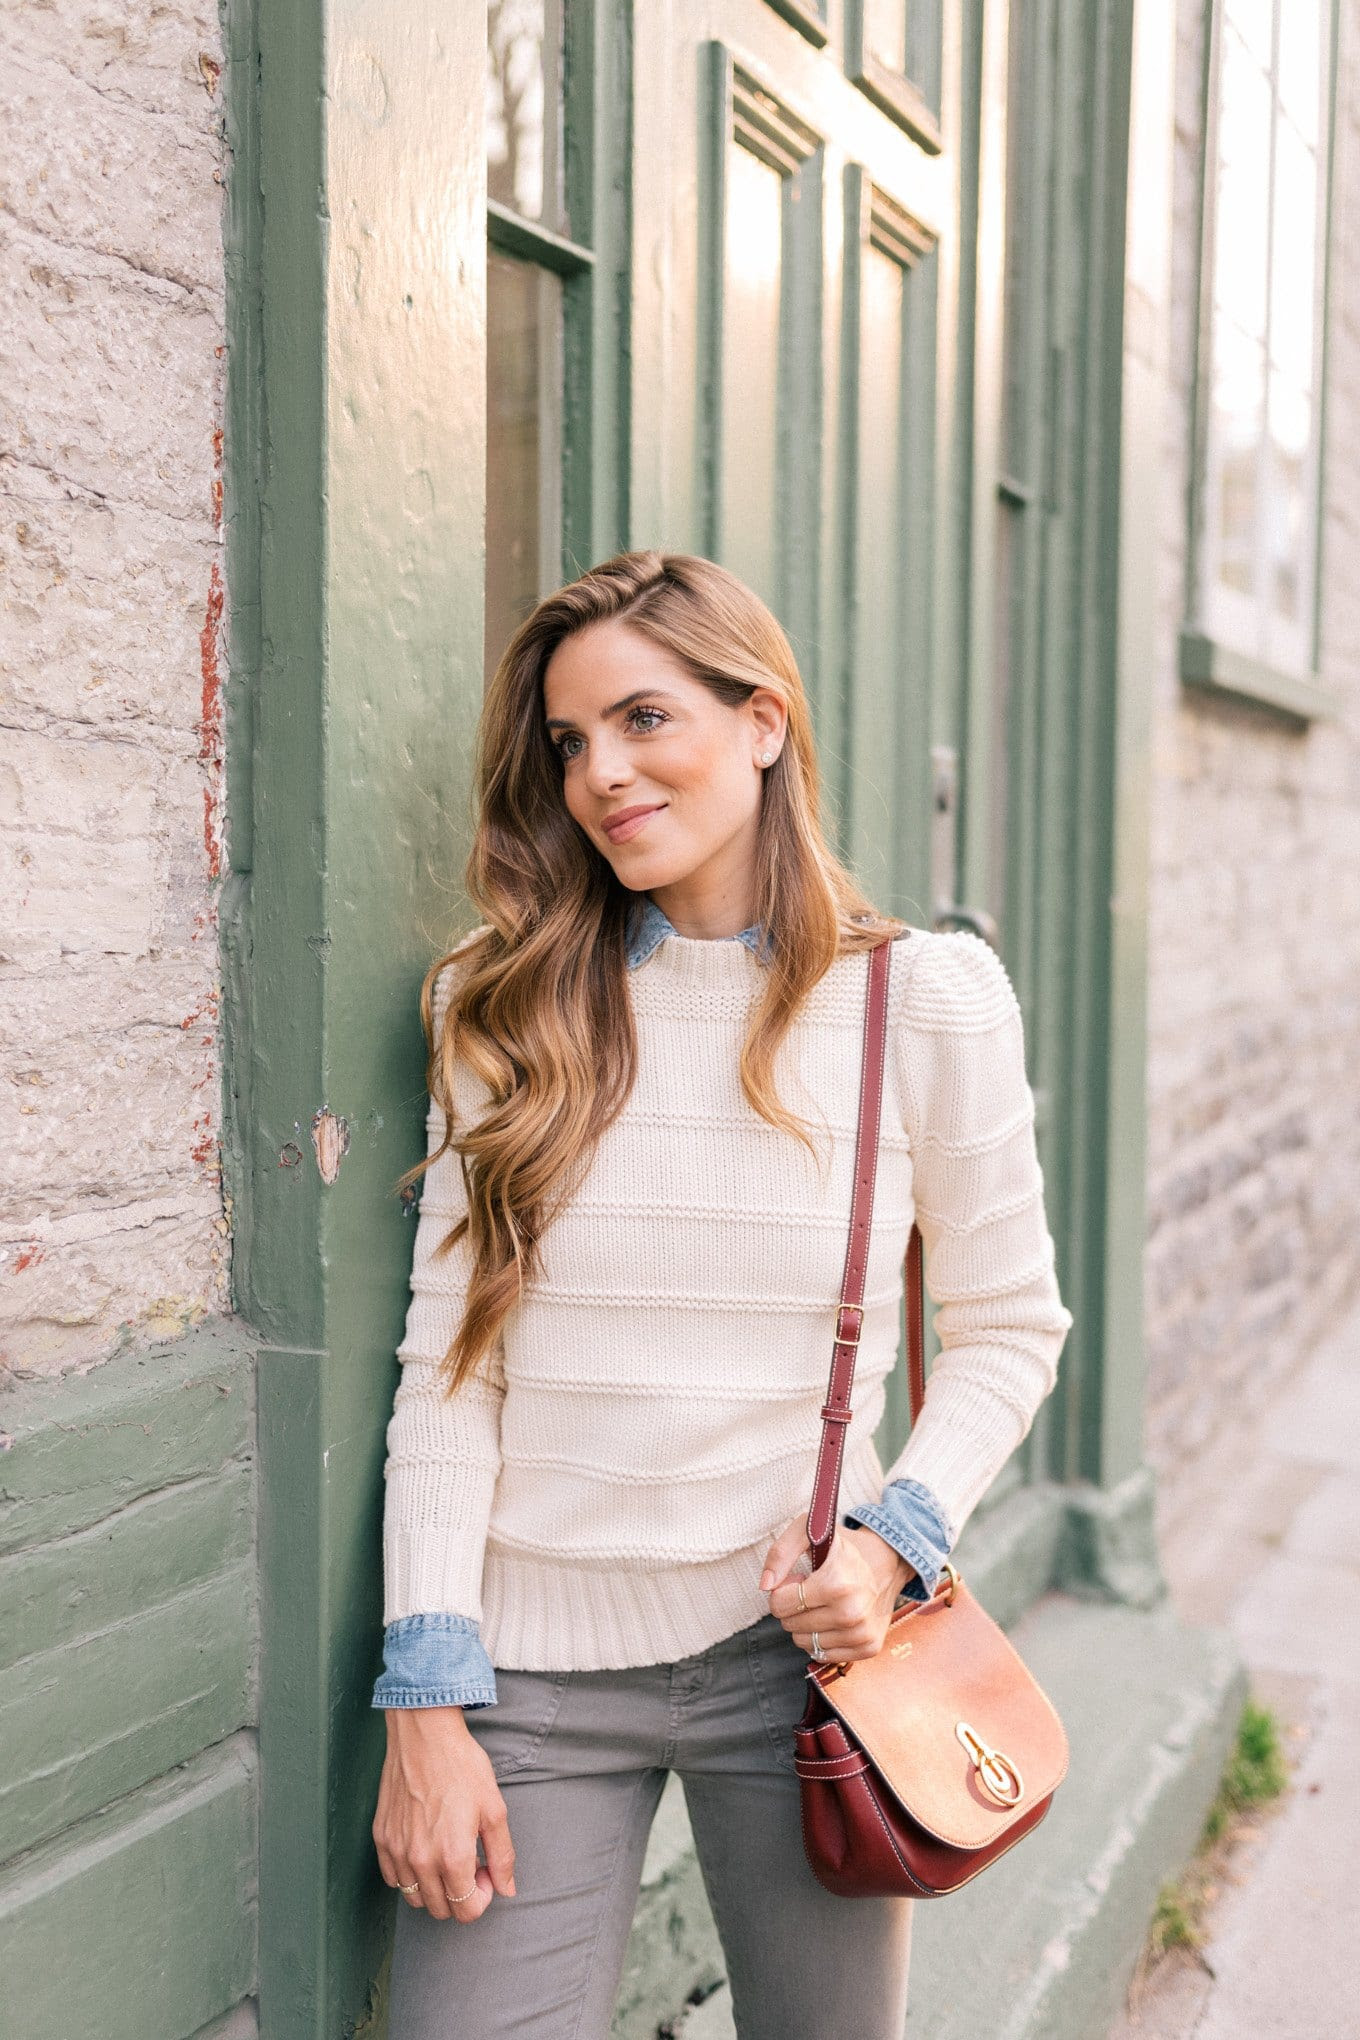 women road trip outfits 20 ideas how to dress for road trip